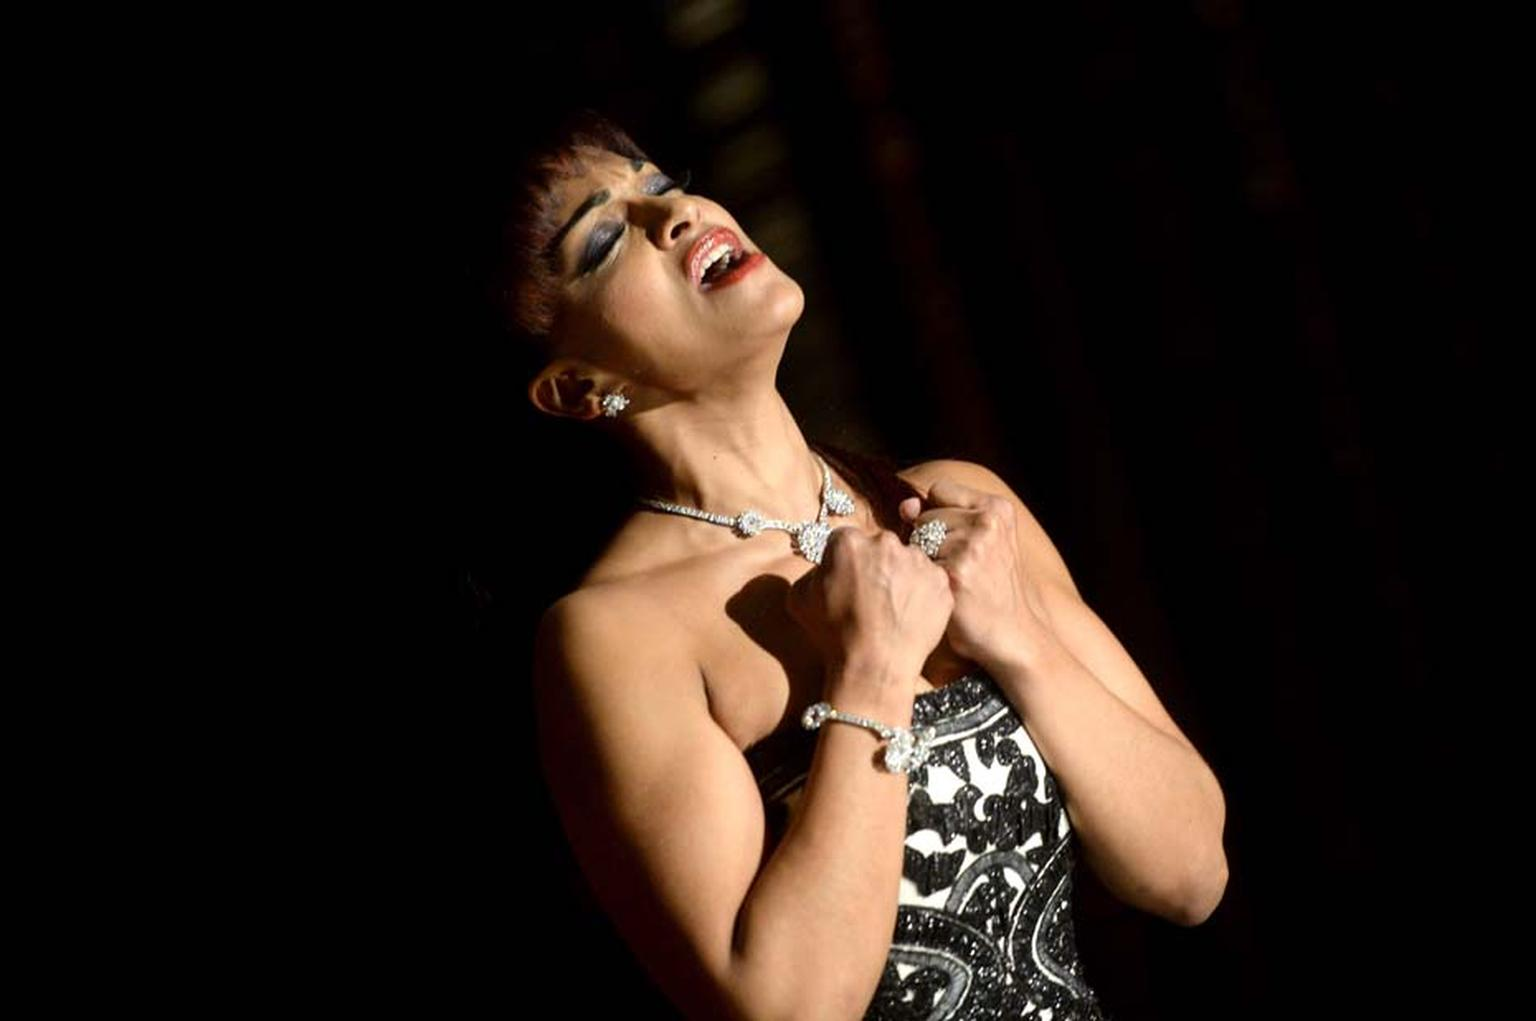 Renowned opera singer Danielle de Niese, wife of Glyndebourne owner Gus Christie, treated invitees to a special performance